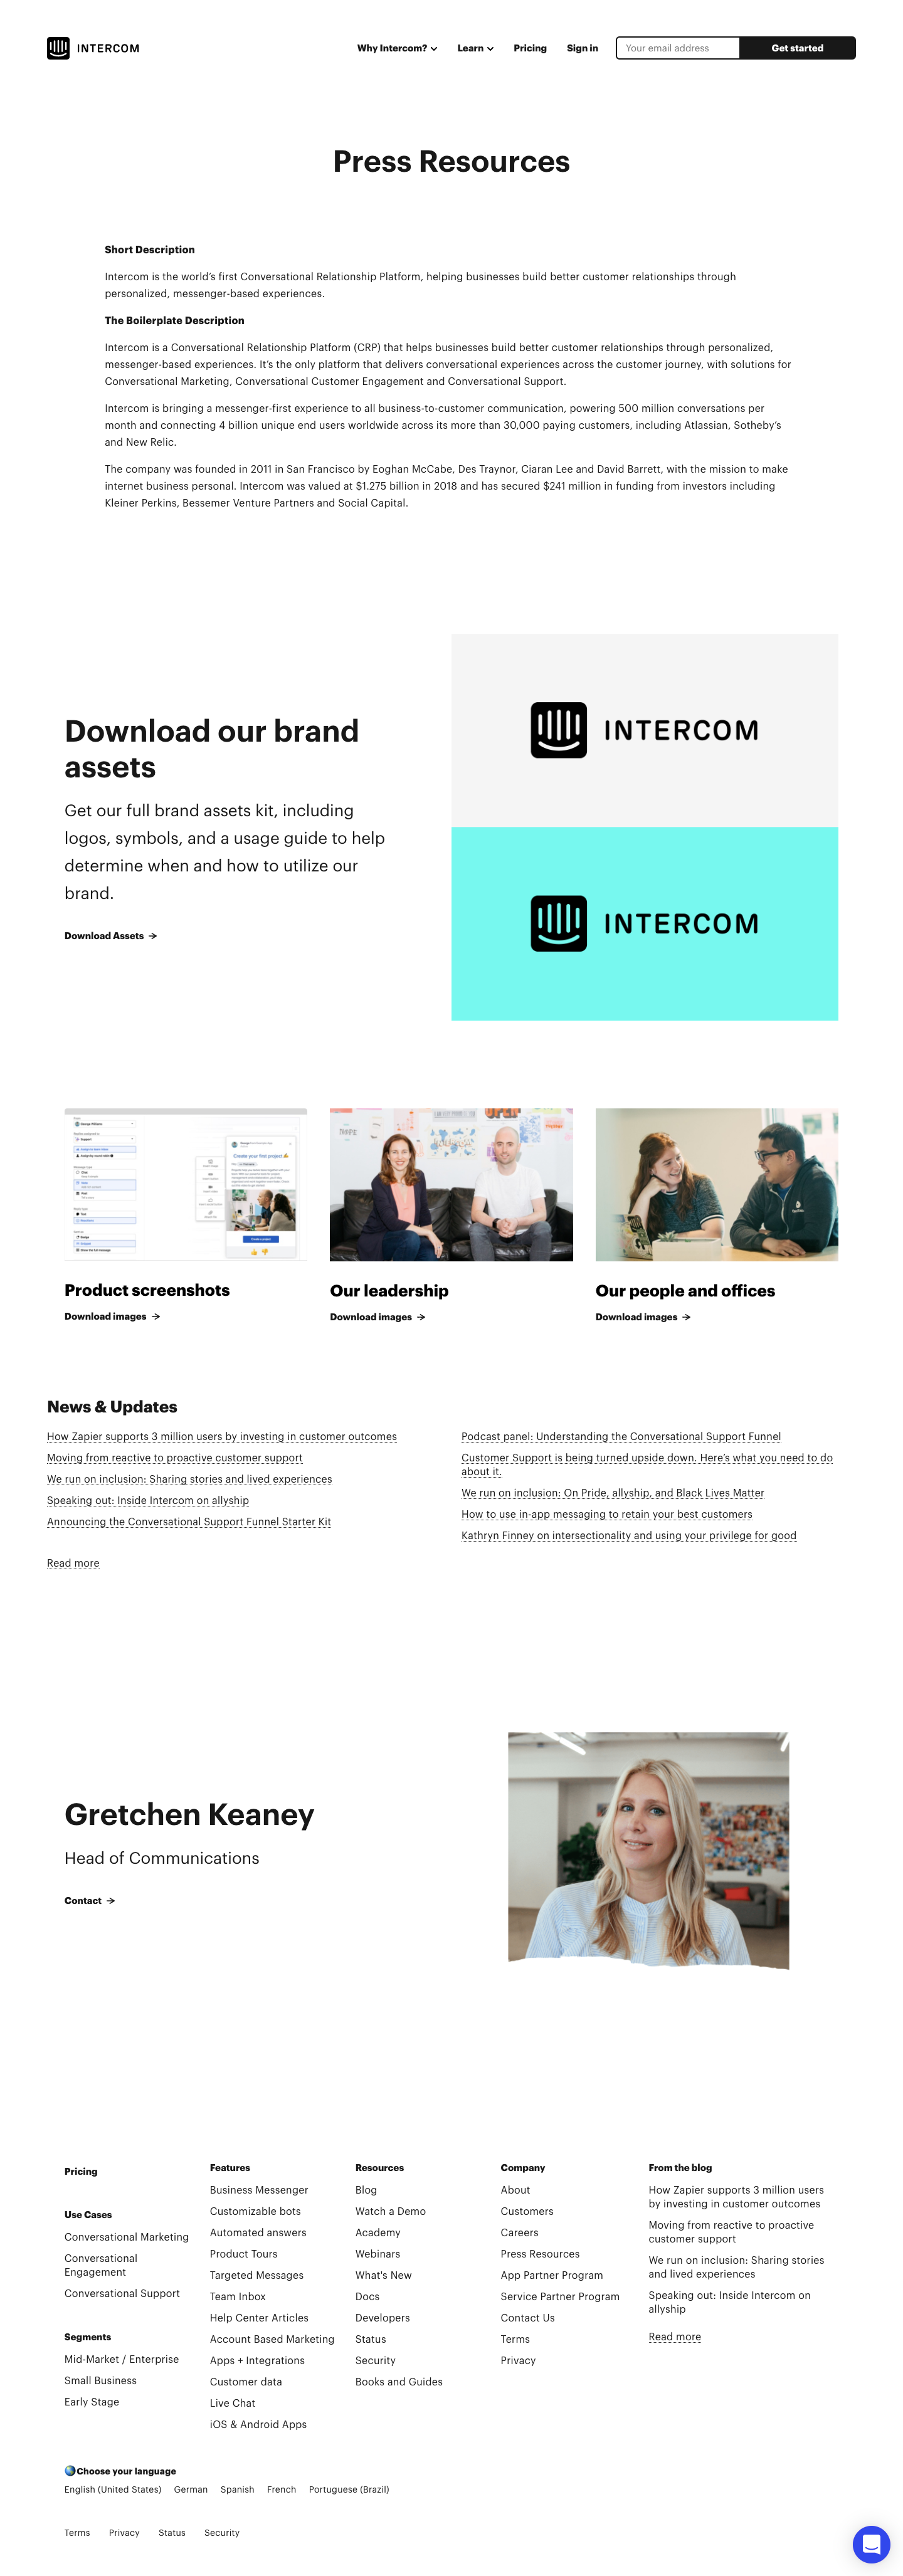 Intercom Press Page